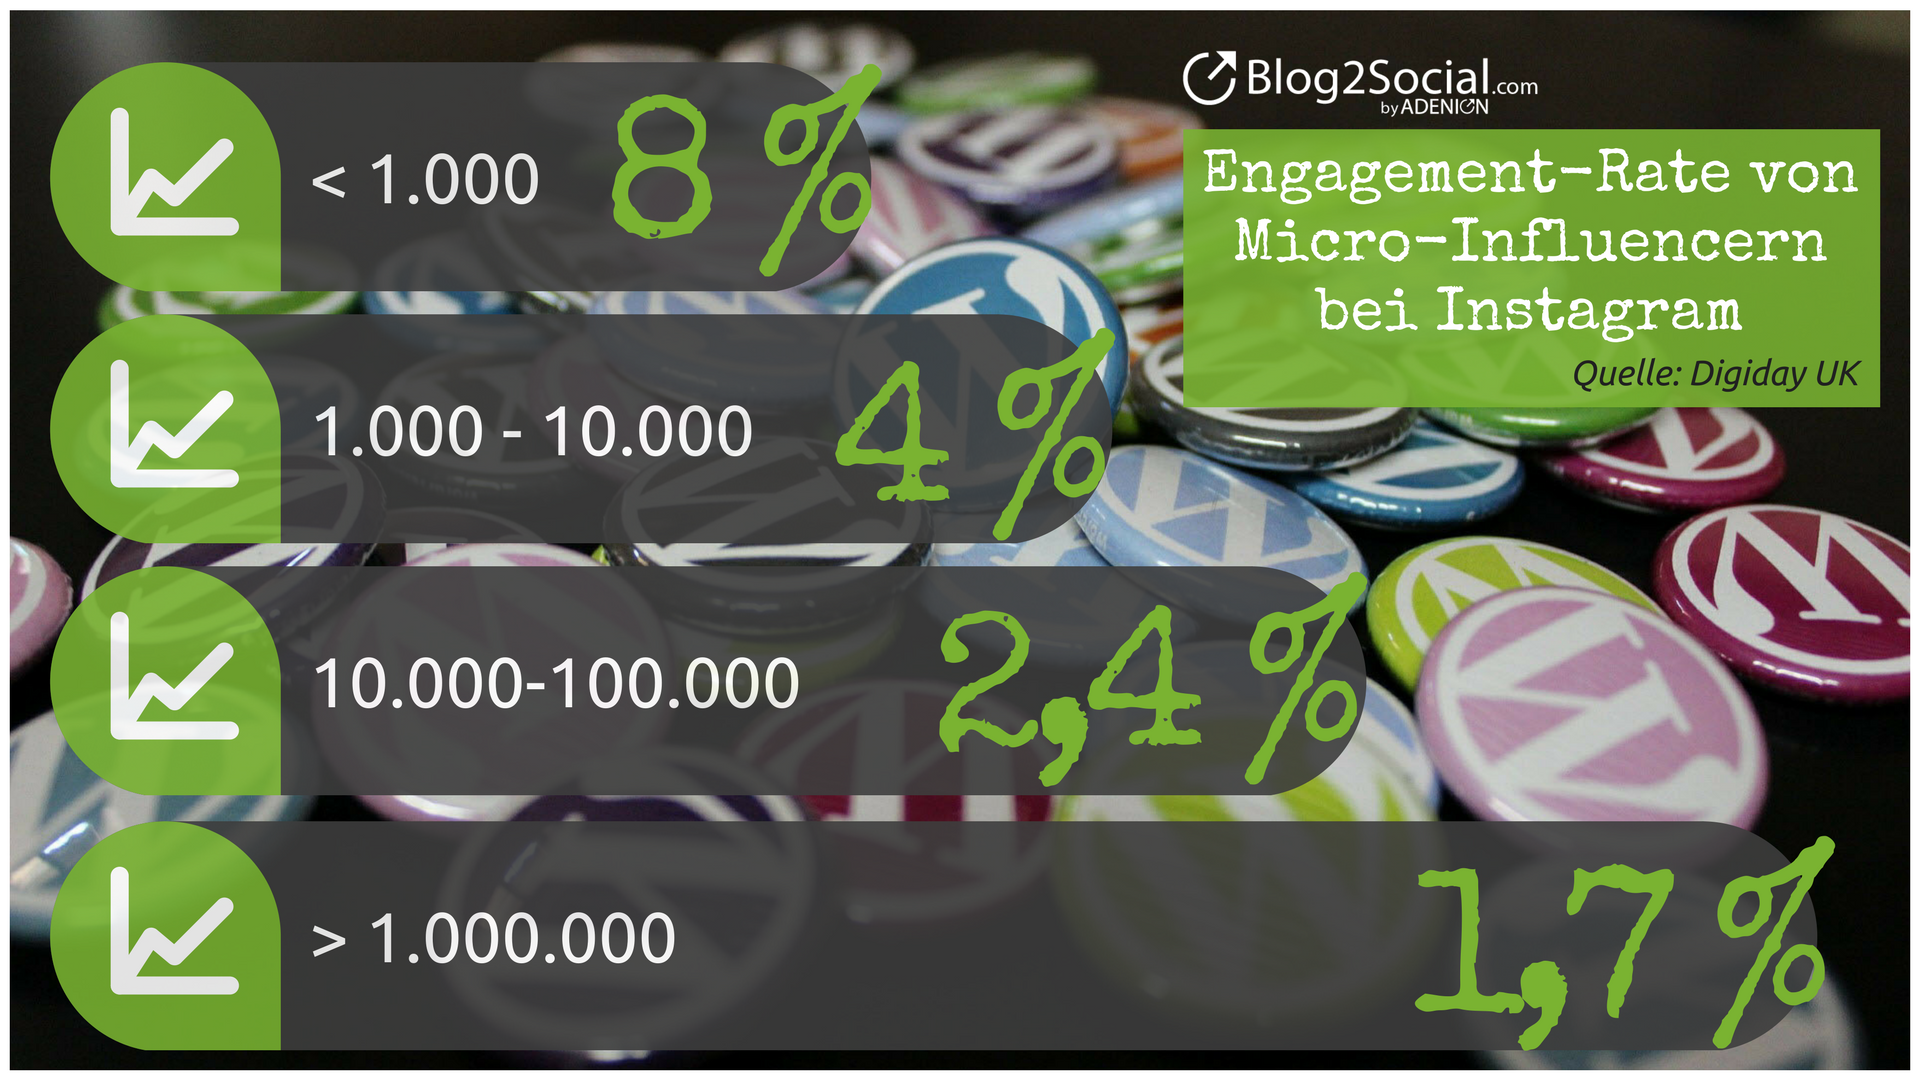 Engagement-Rate von Micro-Influencern bei Instagram